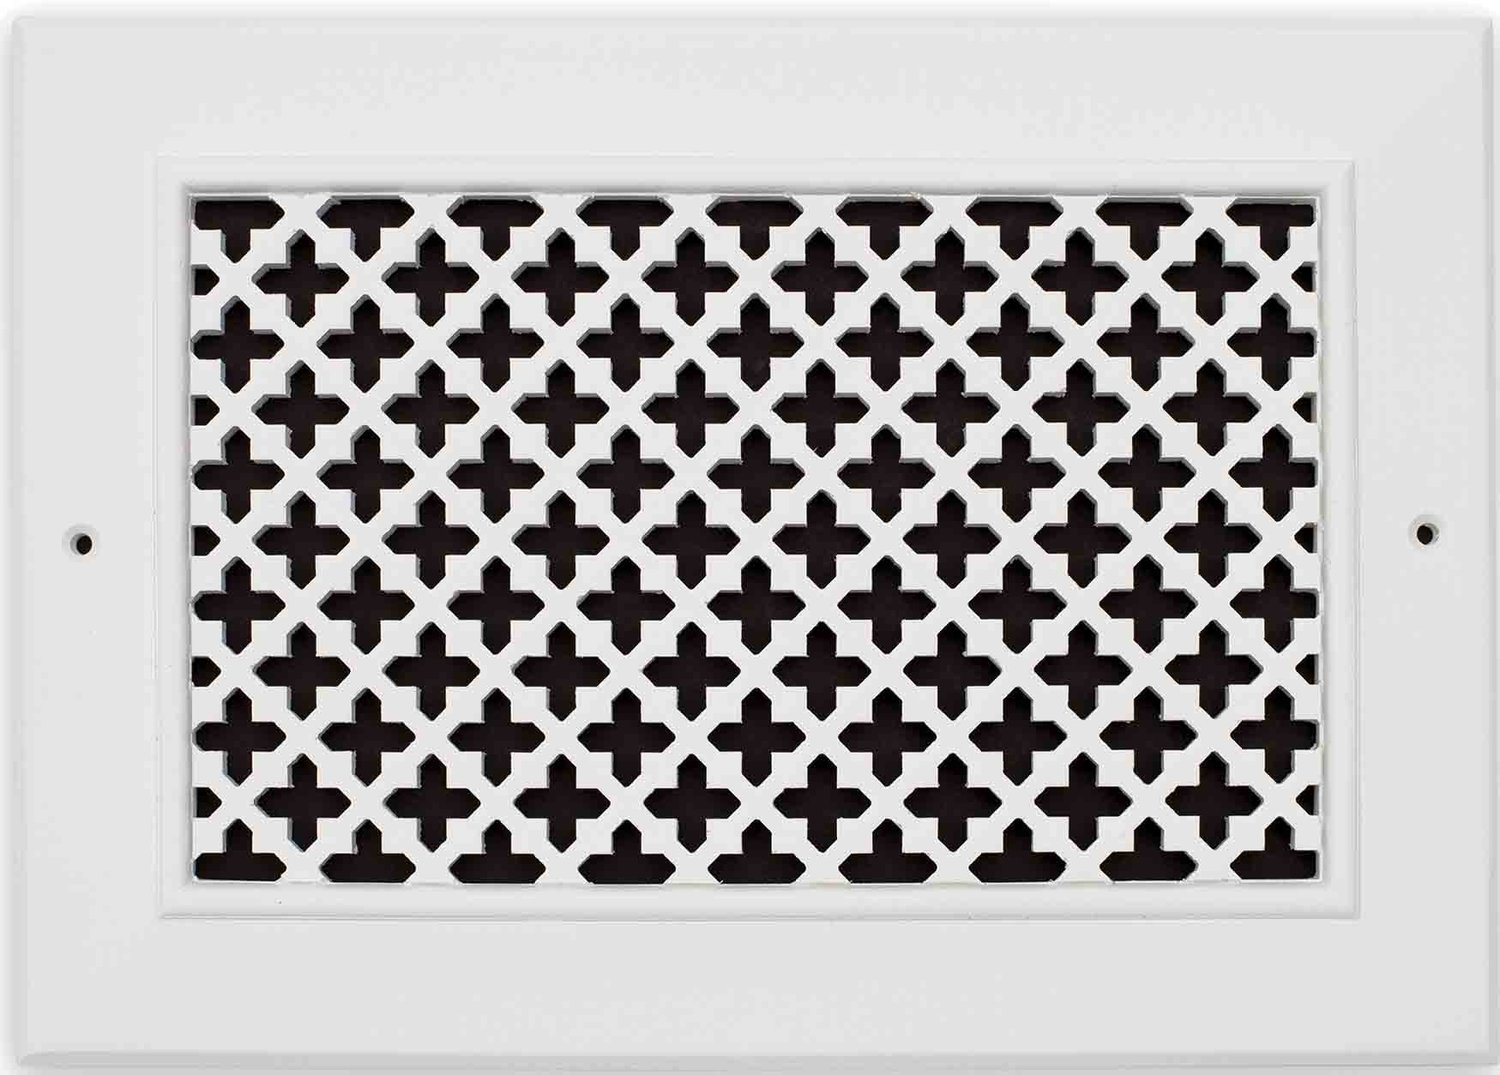 Caspian Cross — Classic Grills and Air Vent Covers